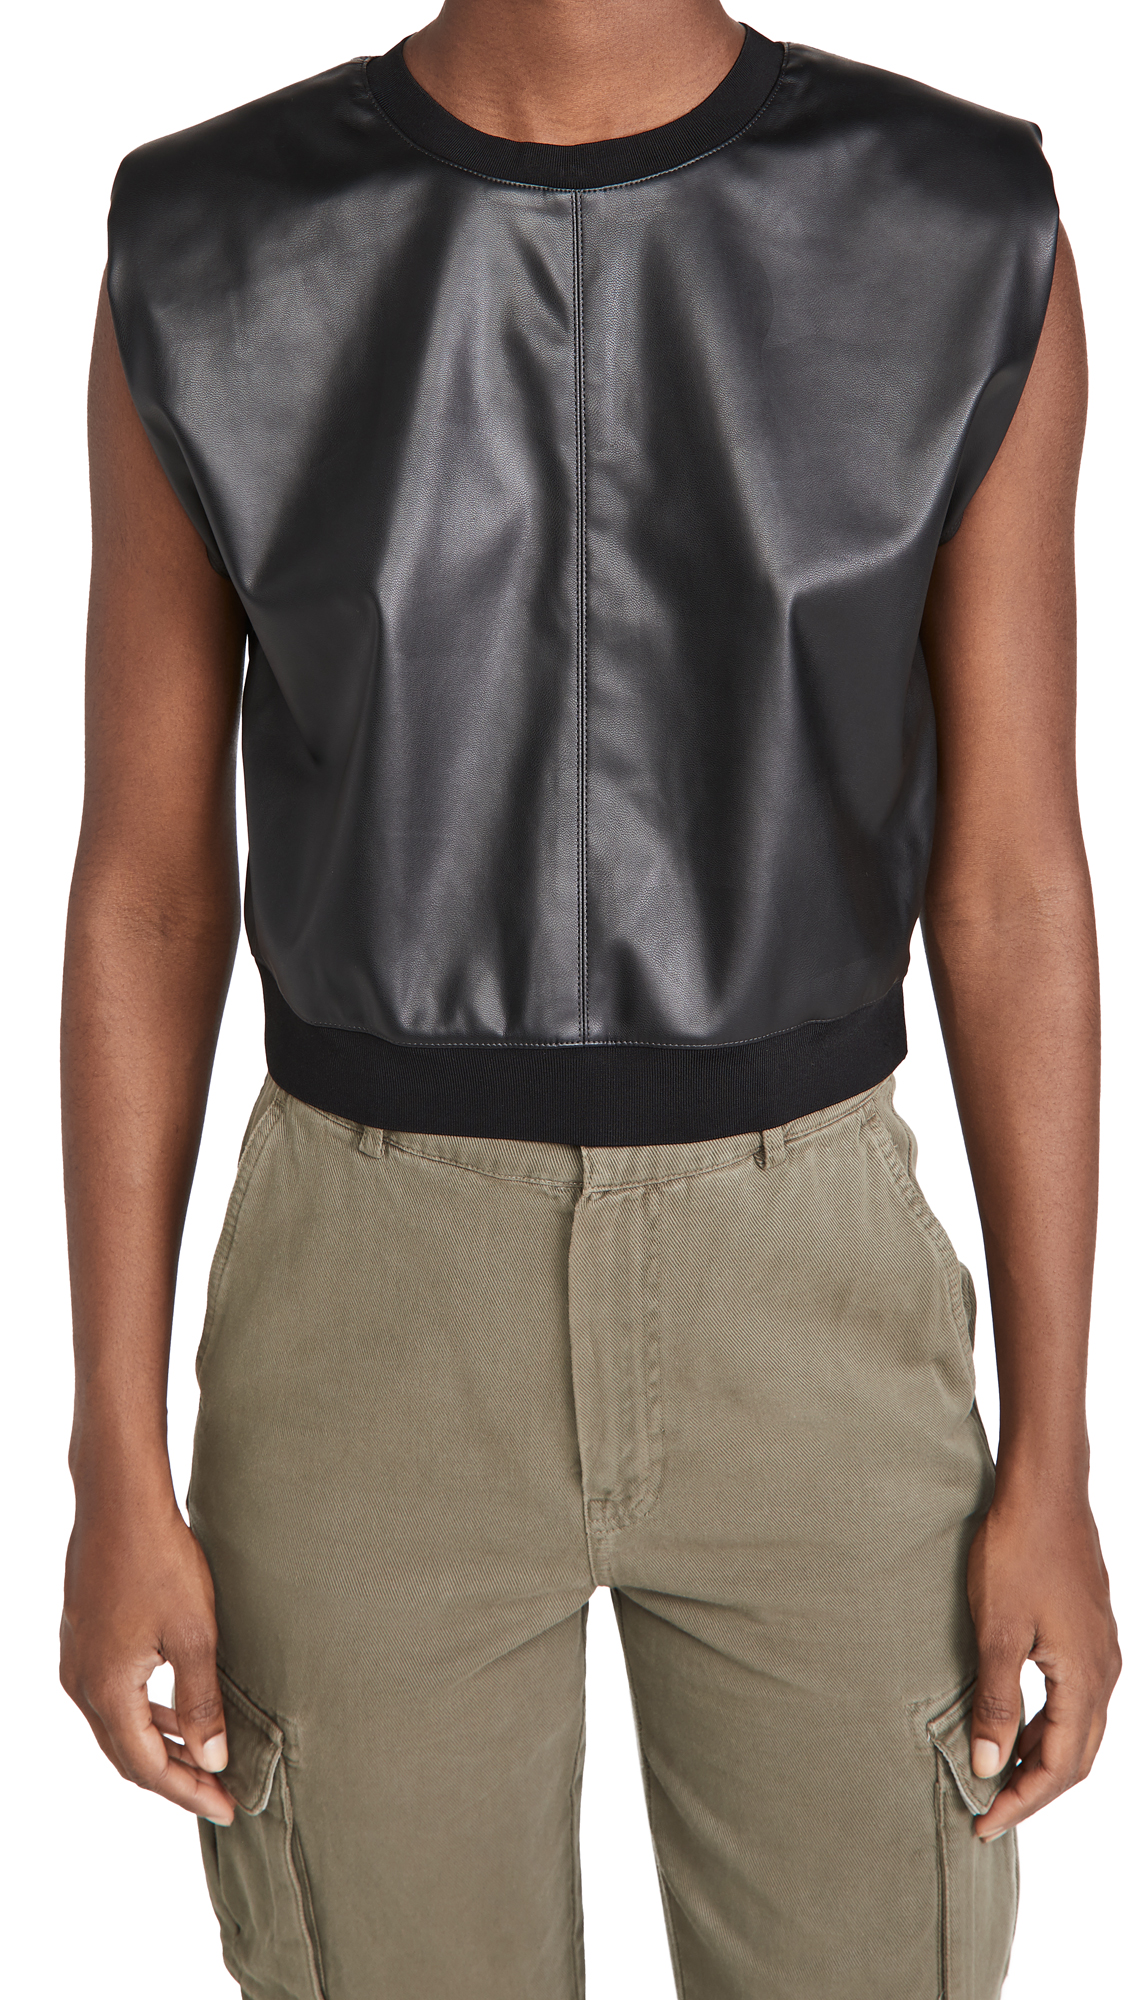 alice + olivia Kendrick Strong Shoulder Vegan Leather Top